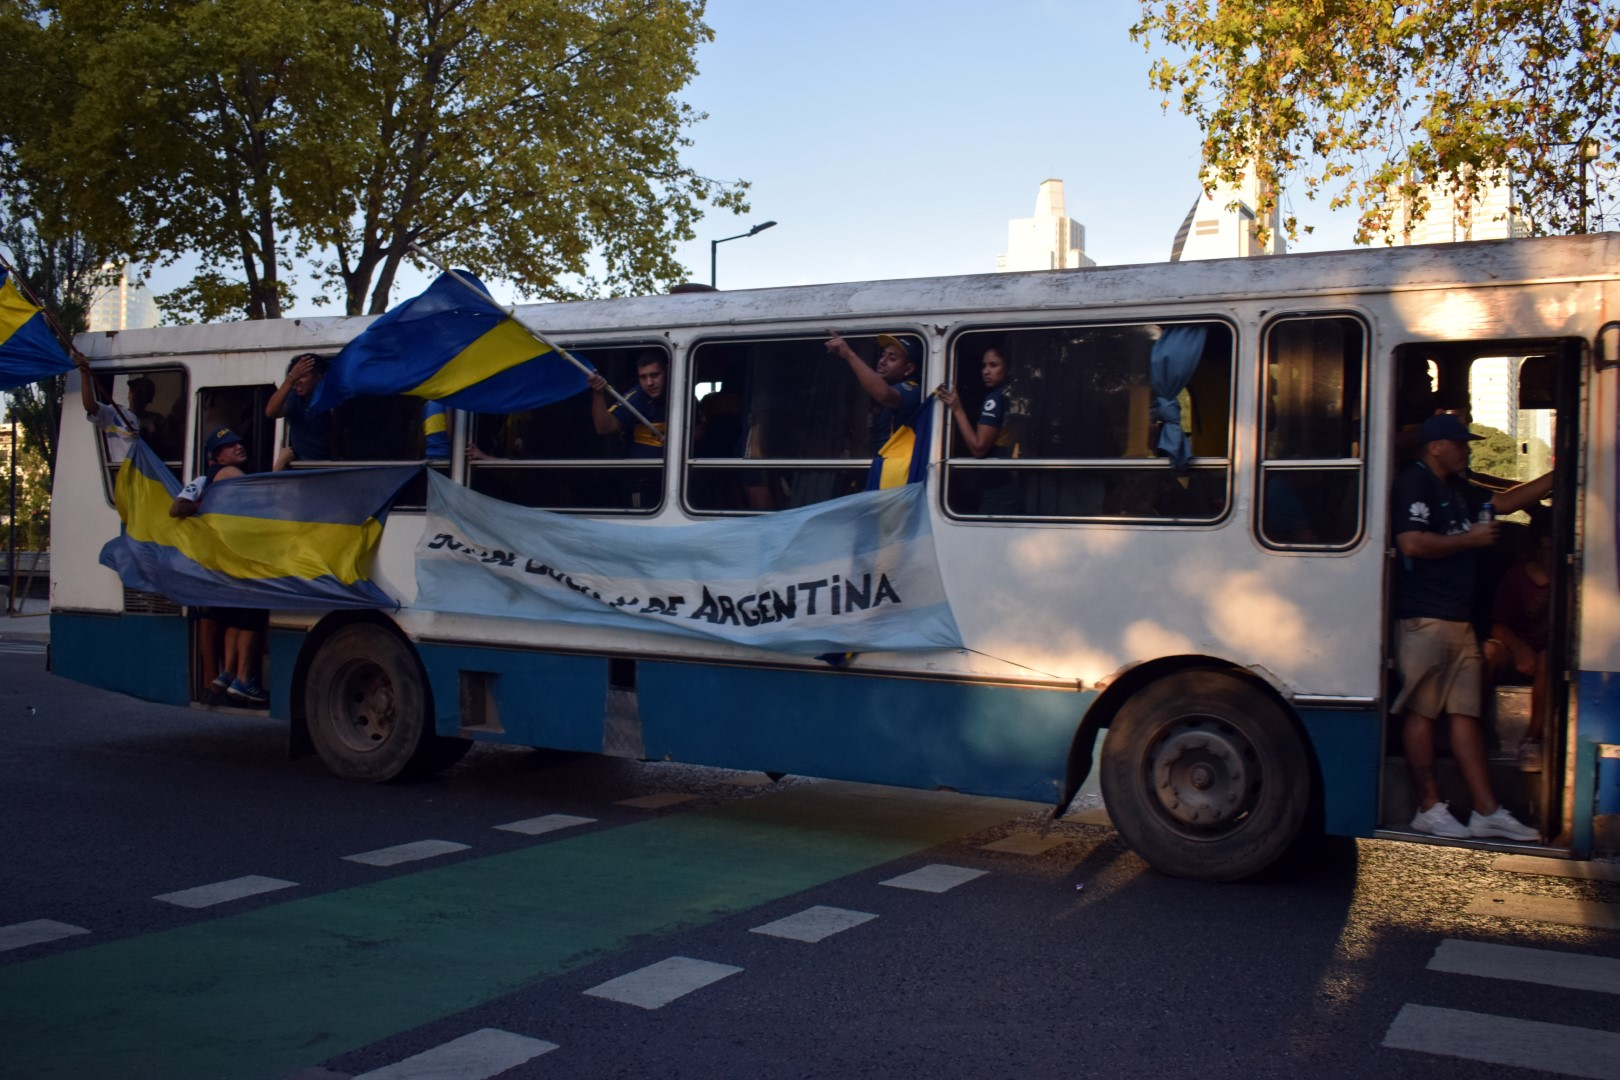 Avenida 9 de Julio, Boca fans going to the game